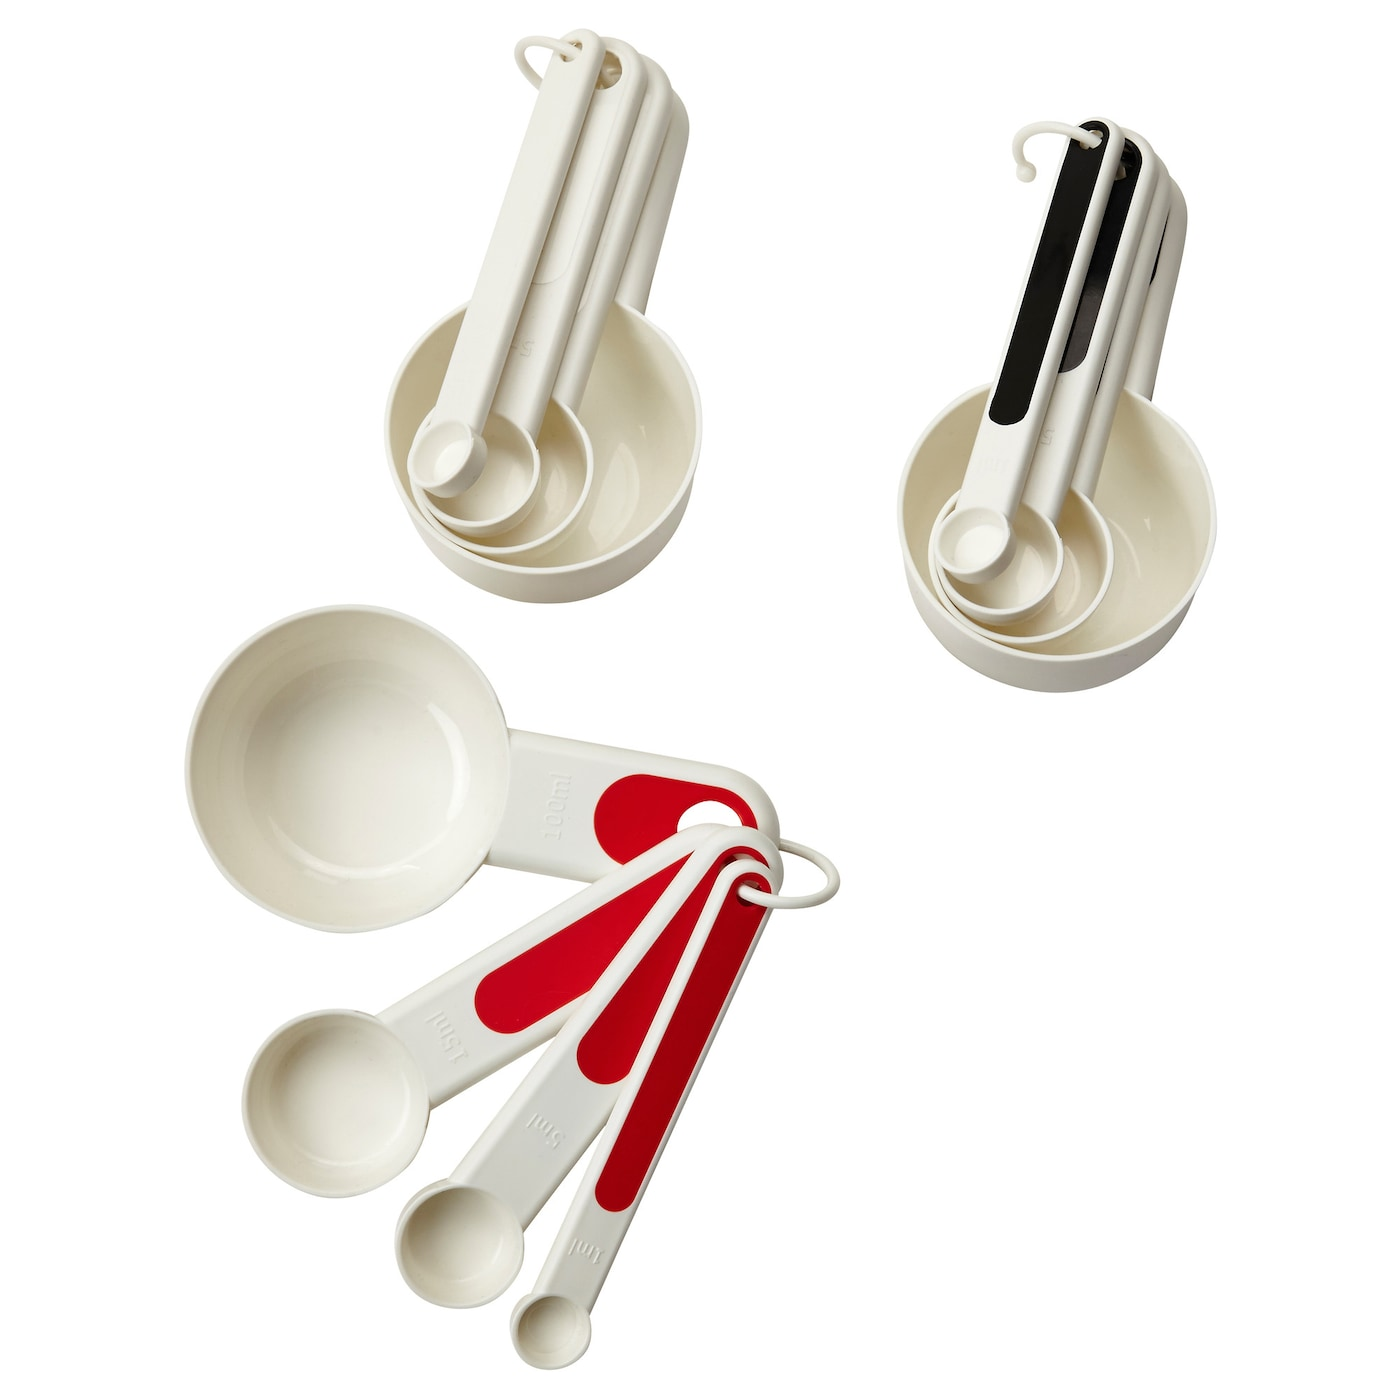 IKEA STÄM set of 4 measuring cups